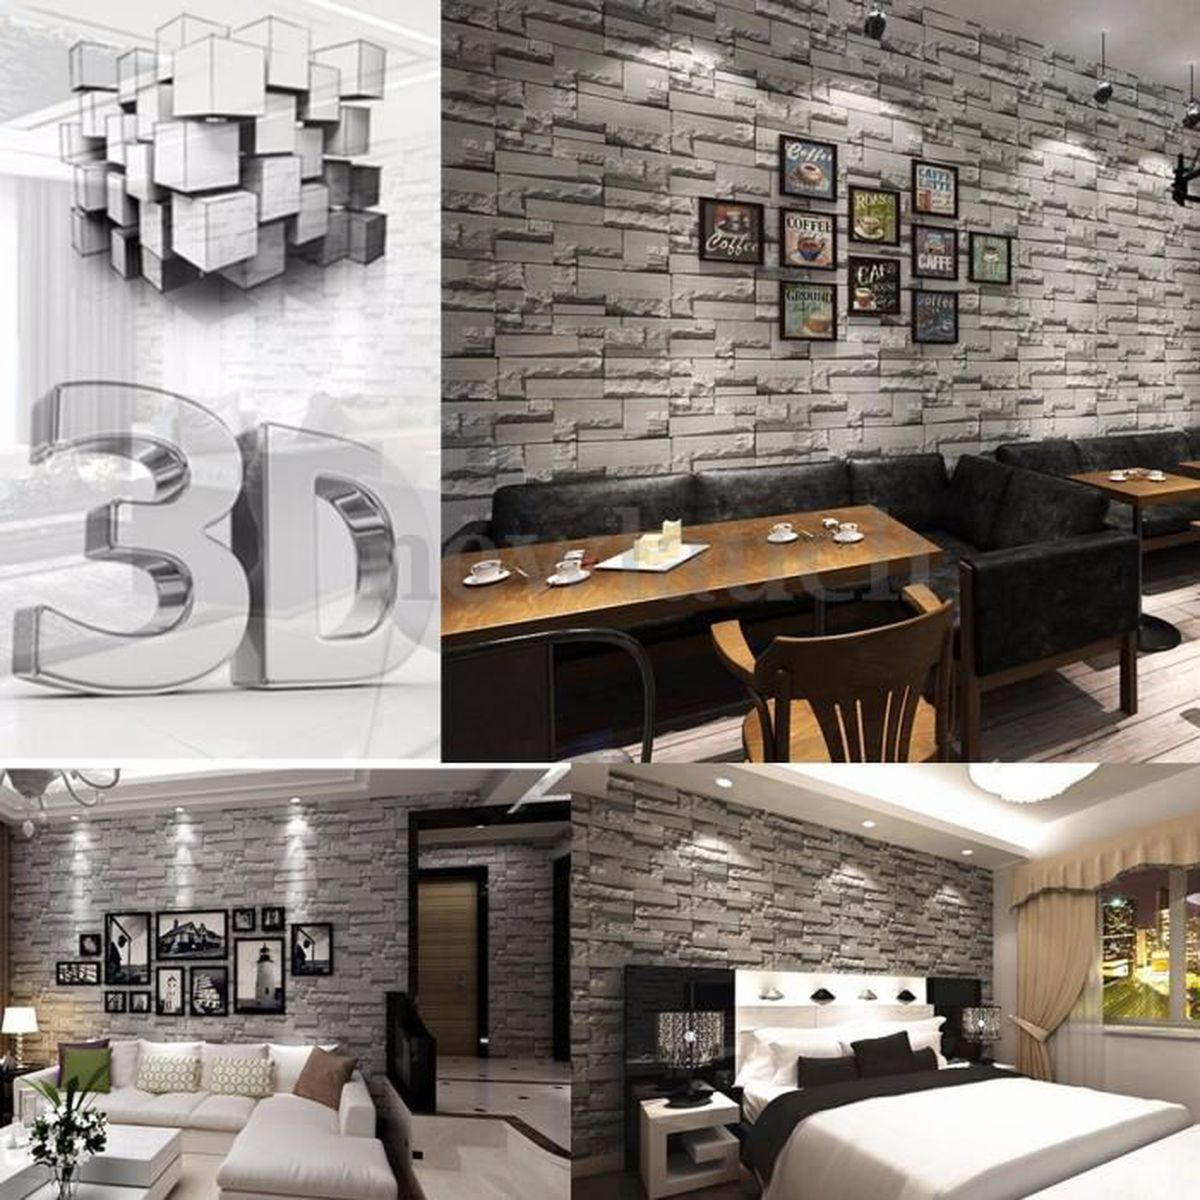 3d 10m papier peint chambre mural rouleau modern pierre mur de briques de fond textur achat. Black Bedroom Furniture Sets. Home Design Ideas